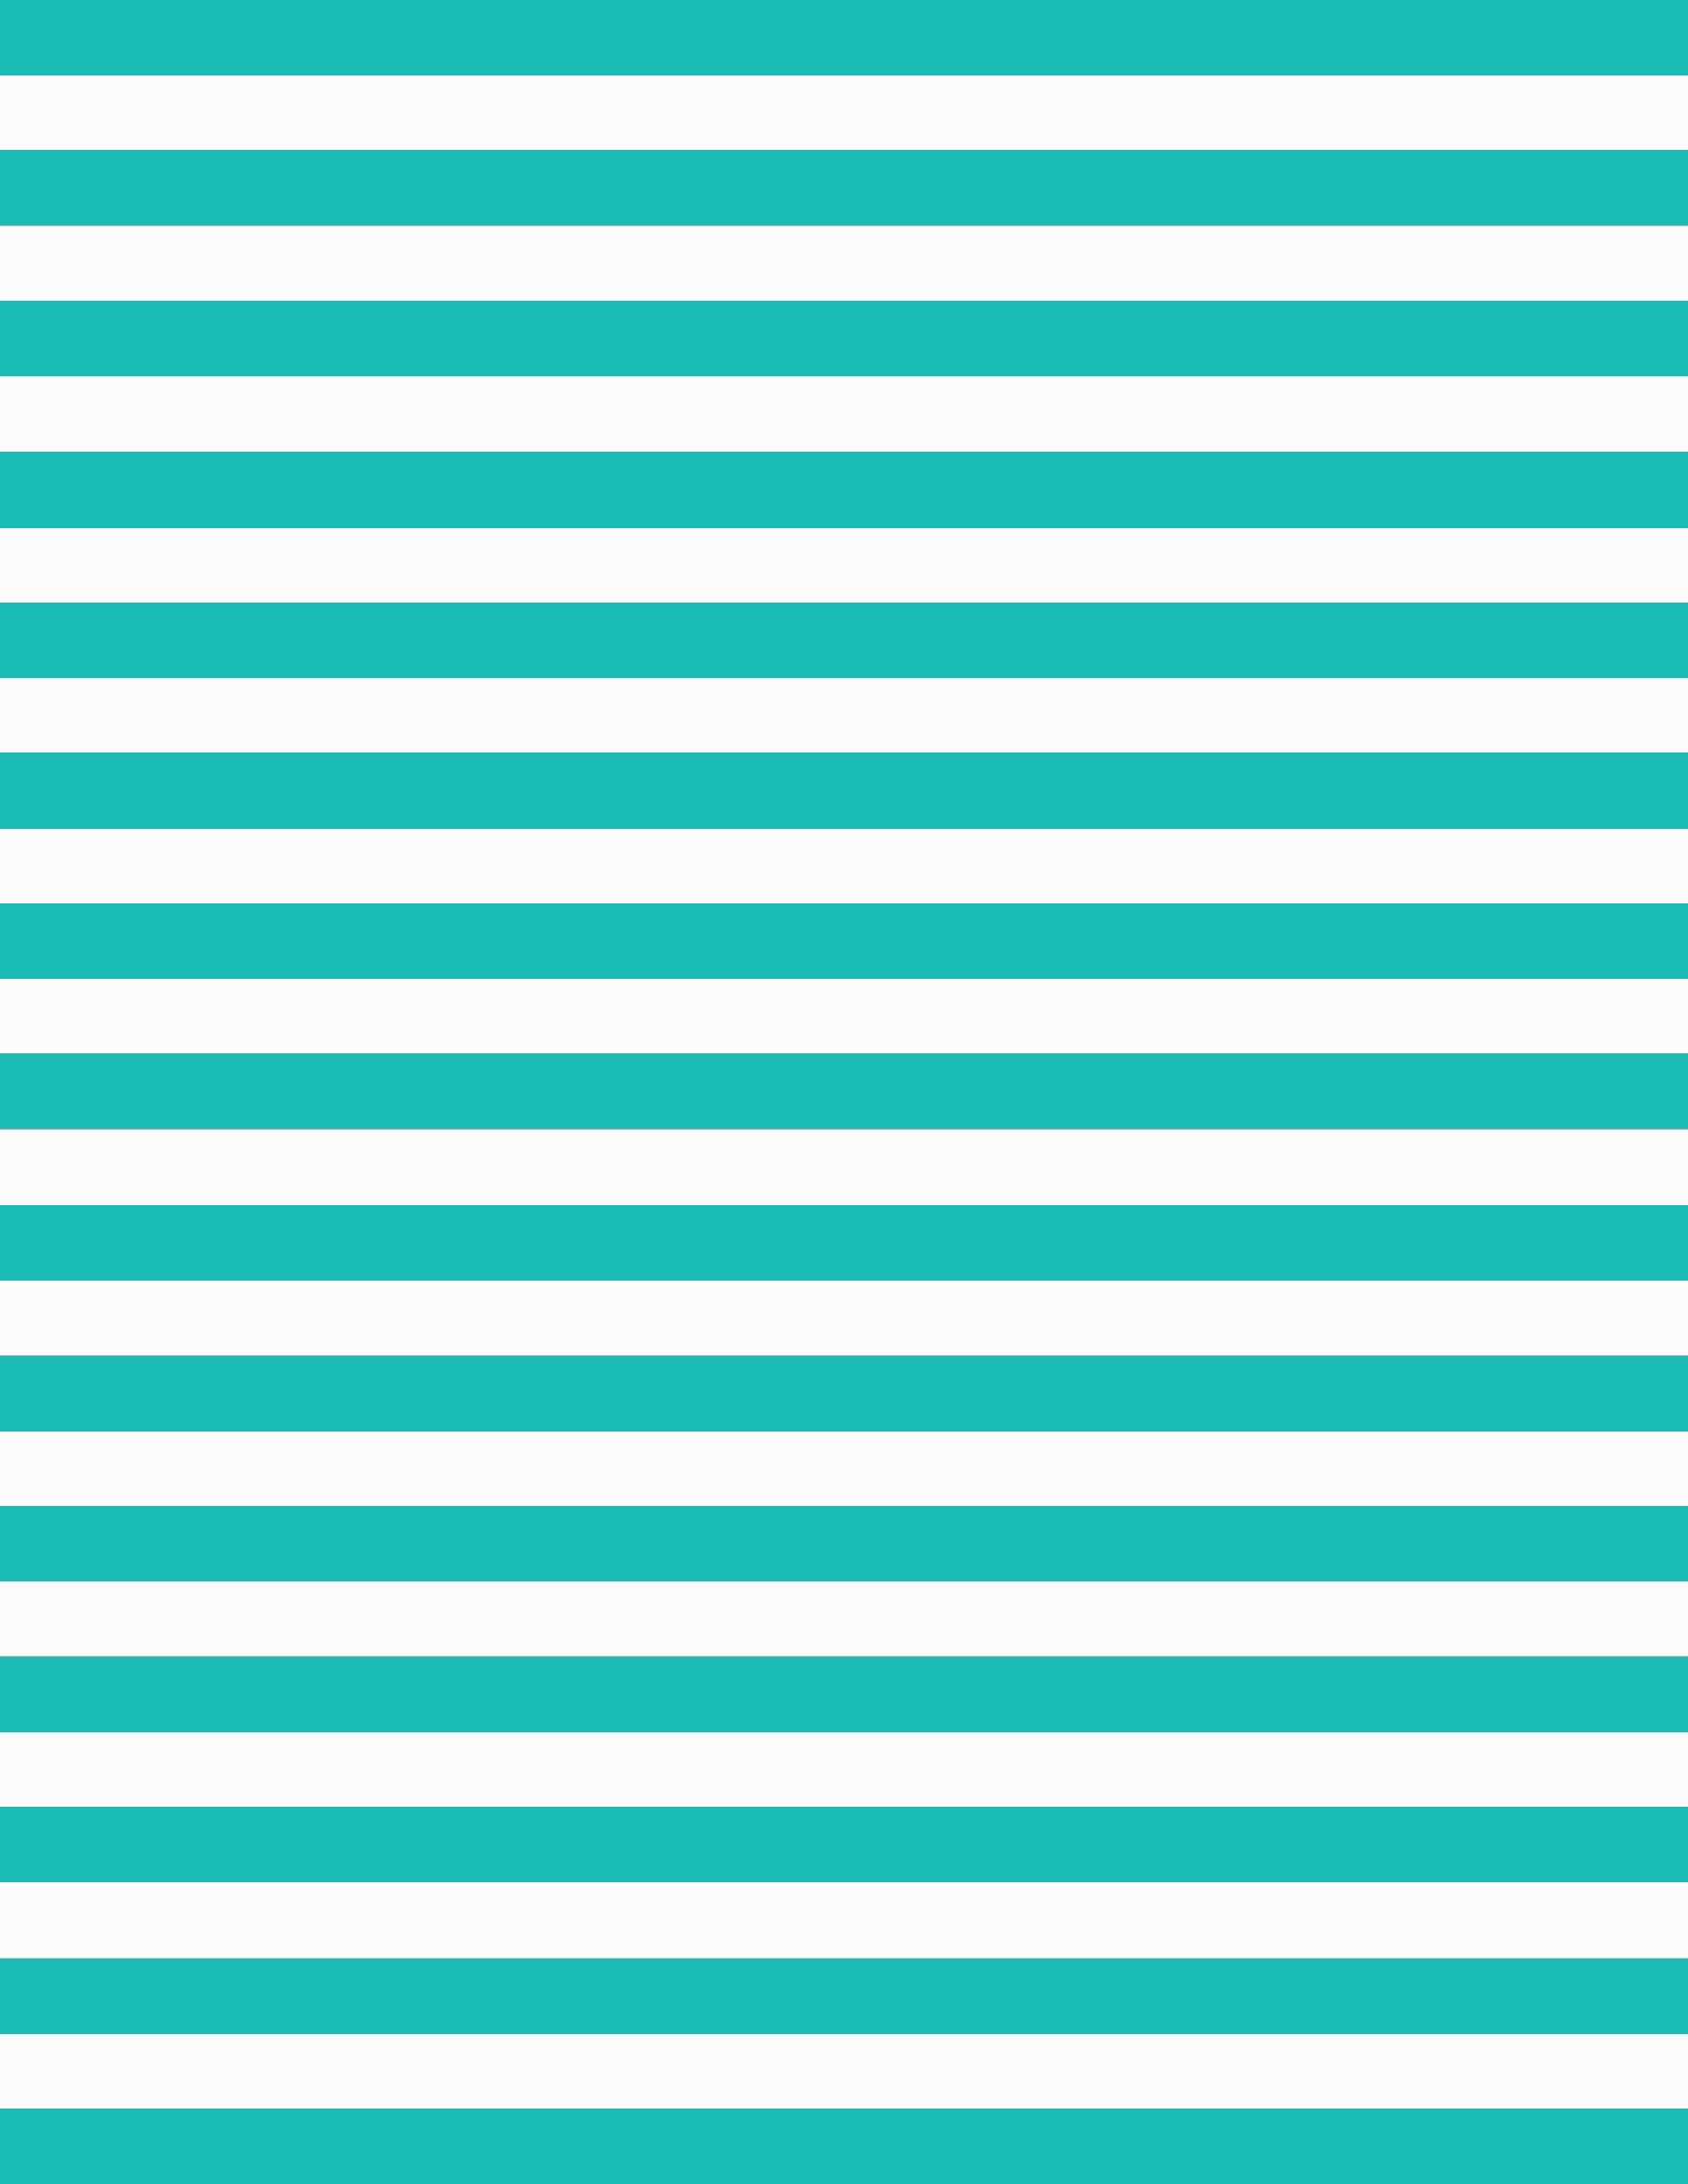 Free Striped Background in Any Color | Personal ...